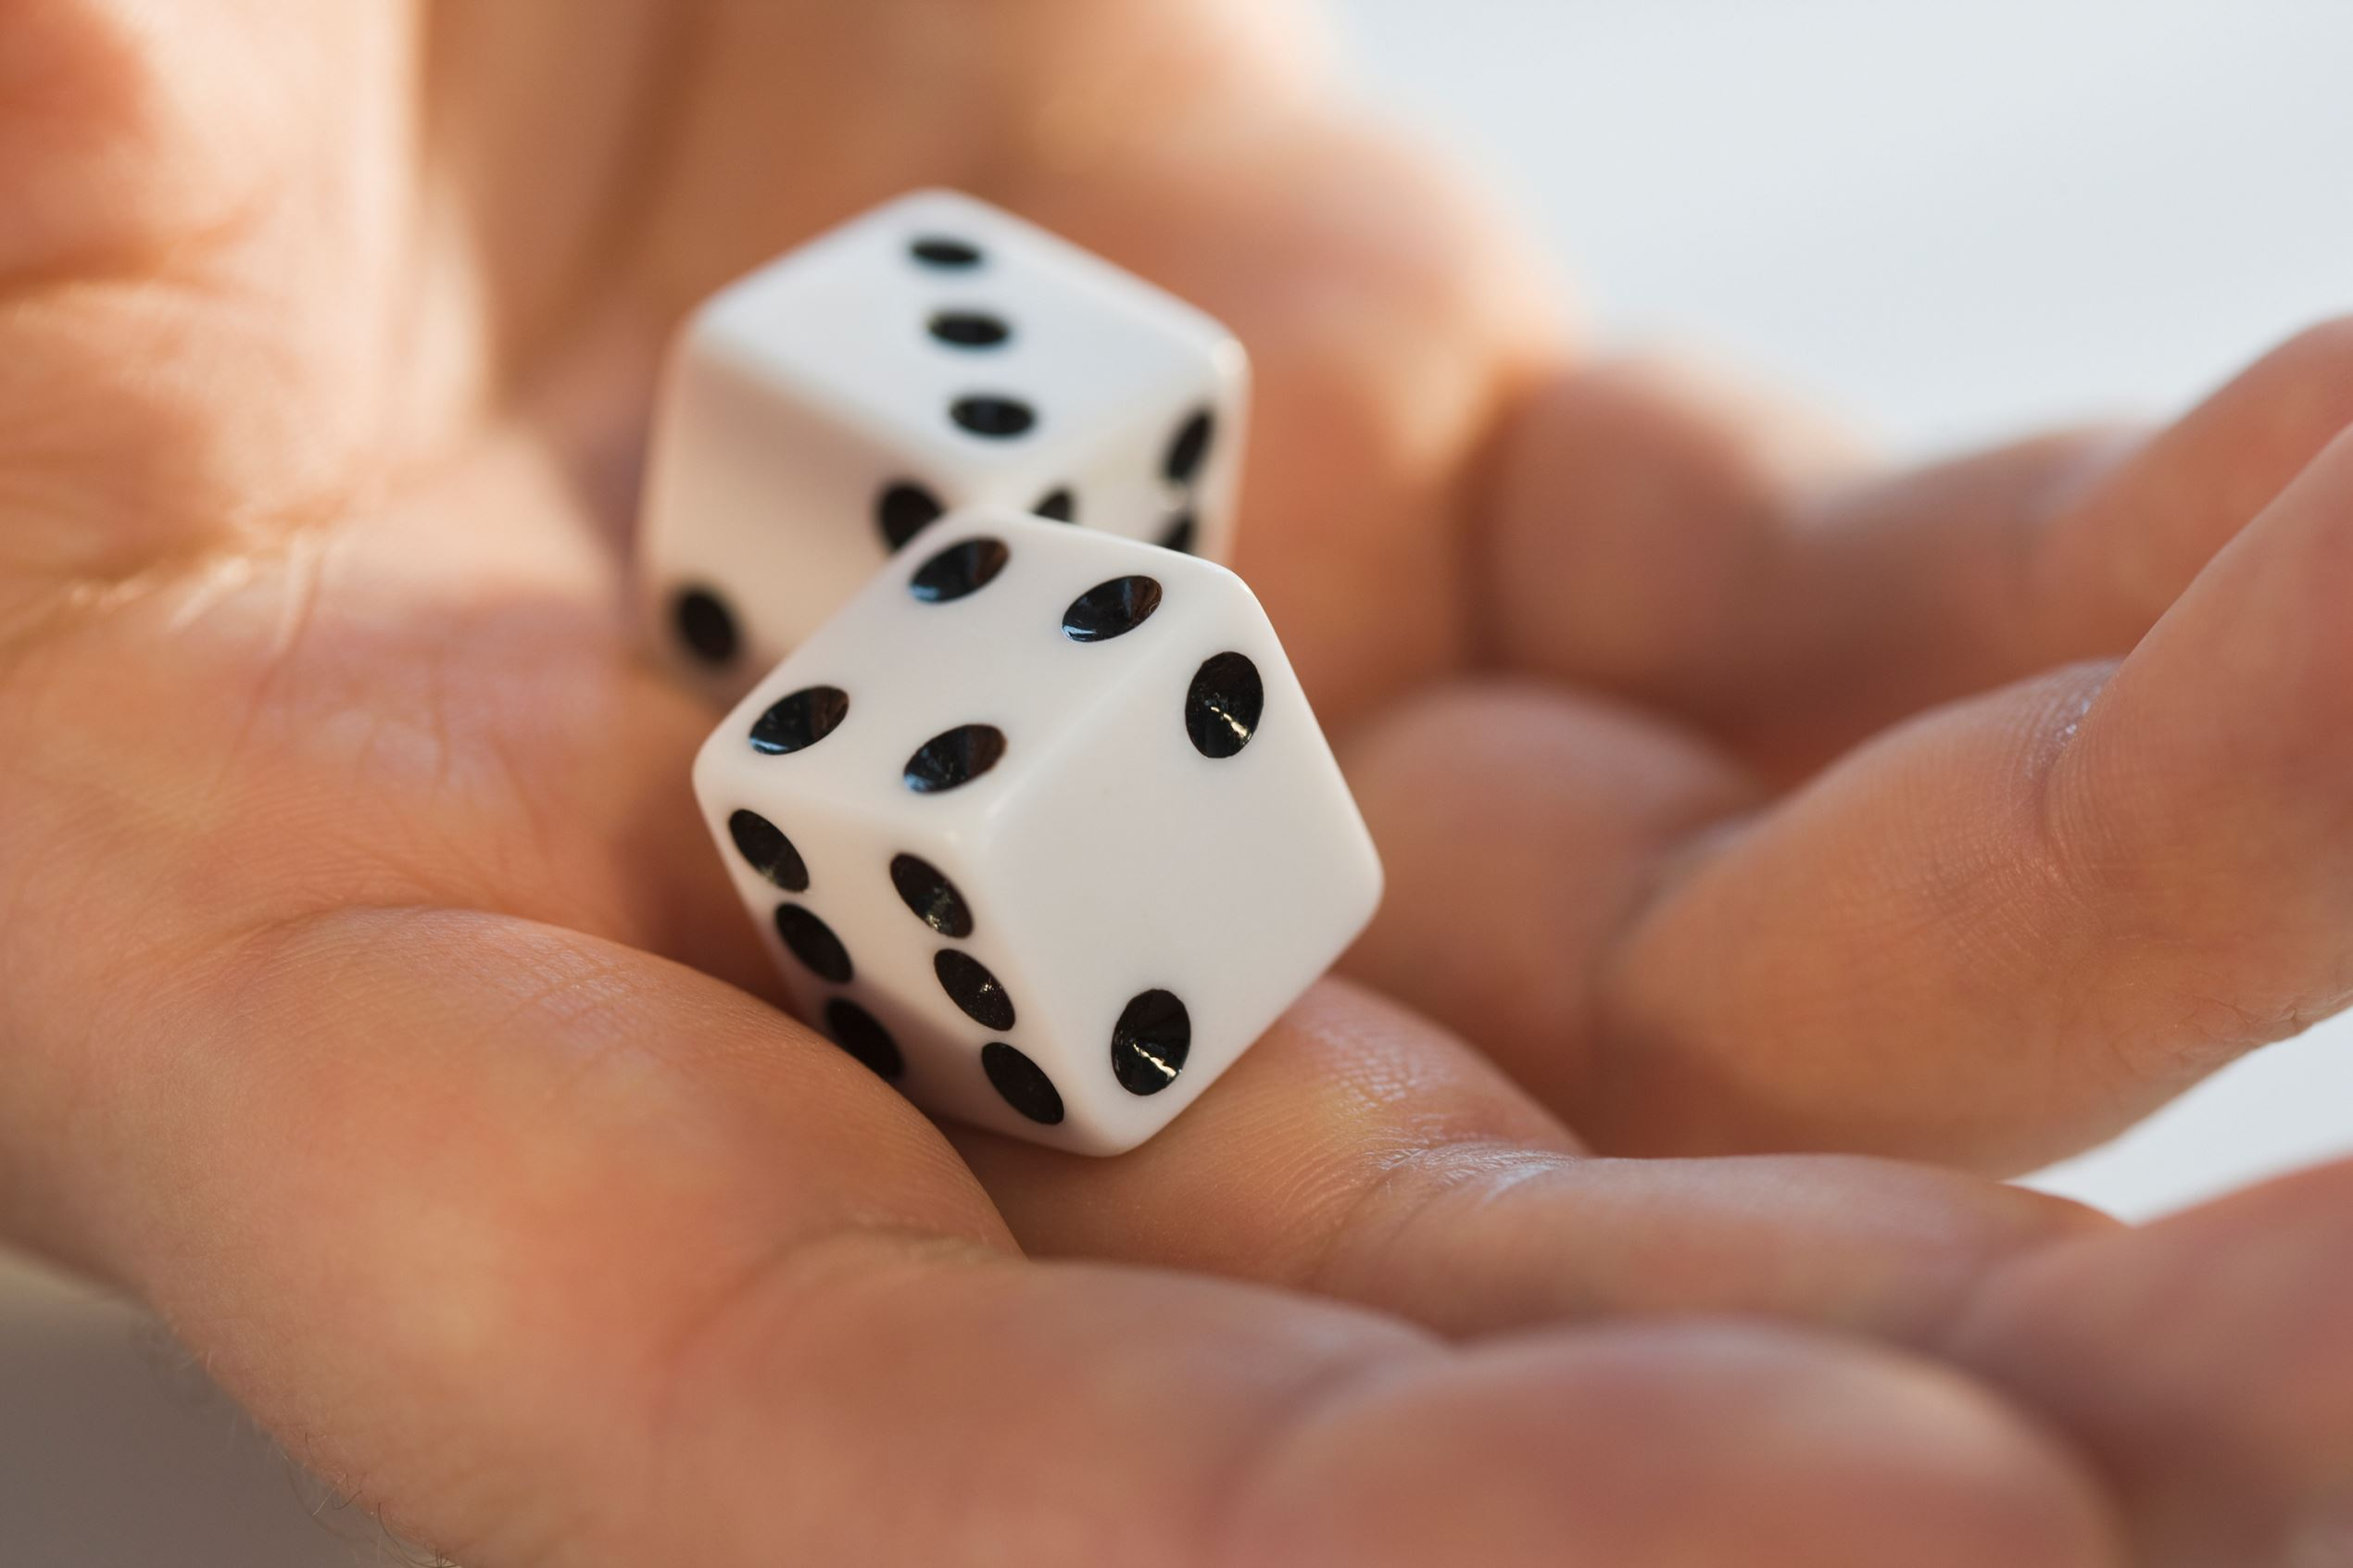 Close up of dice in man's hand.